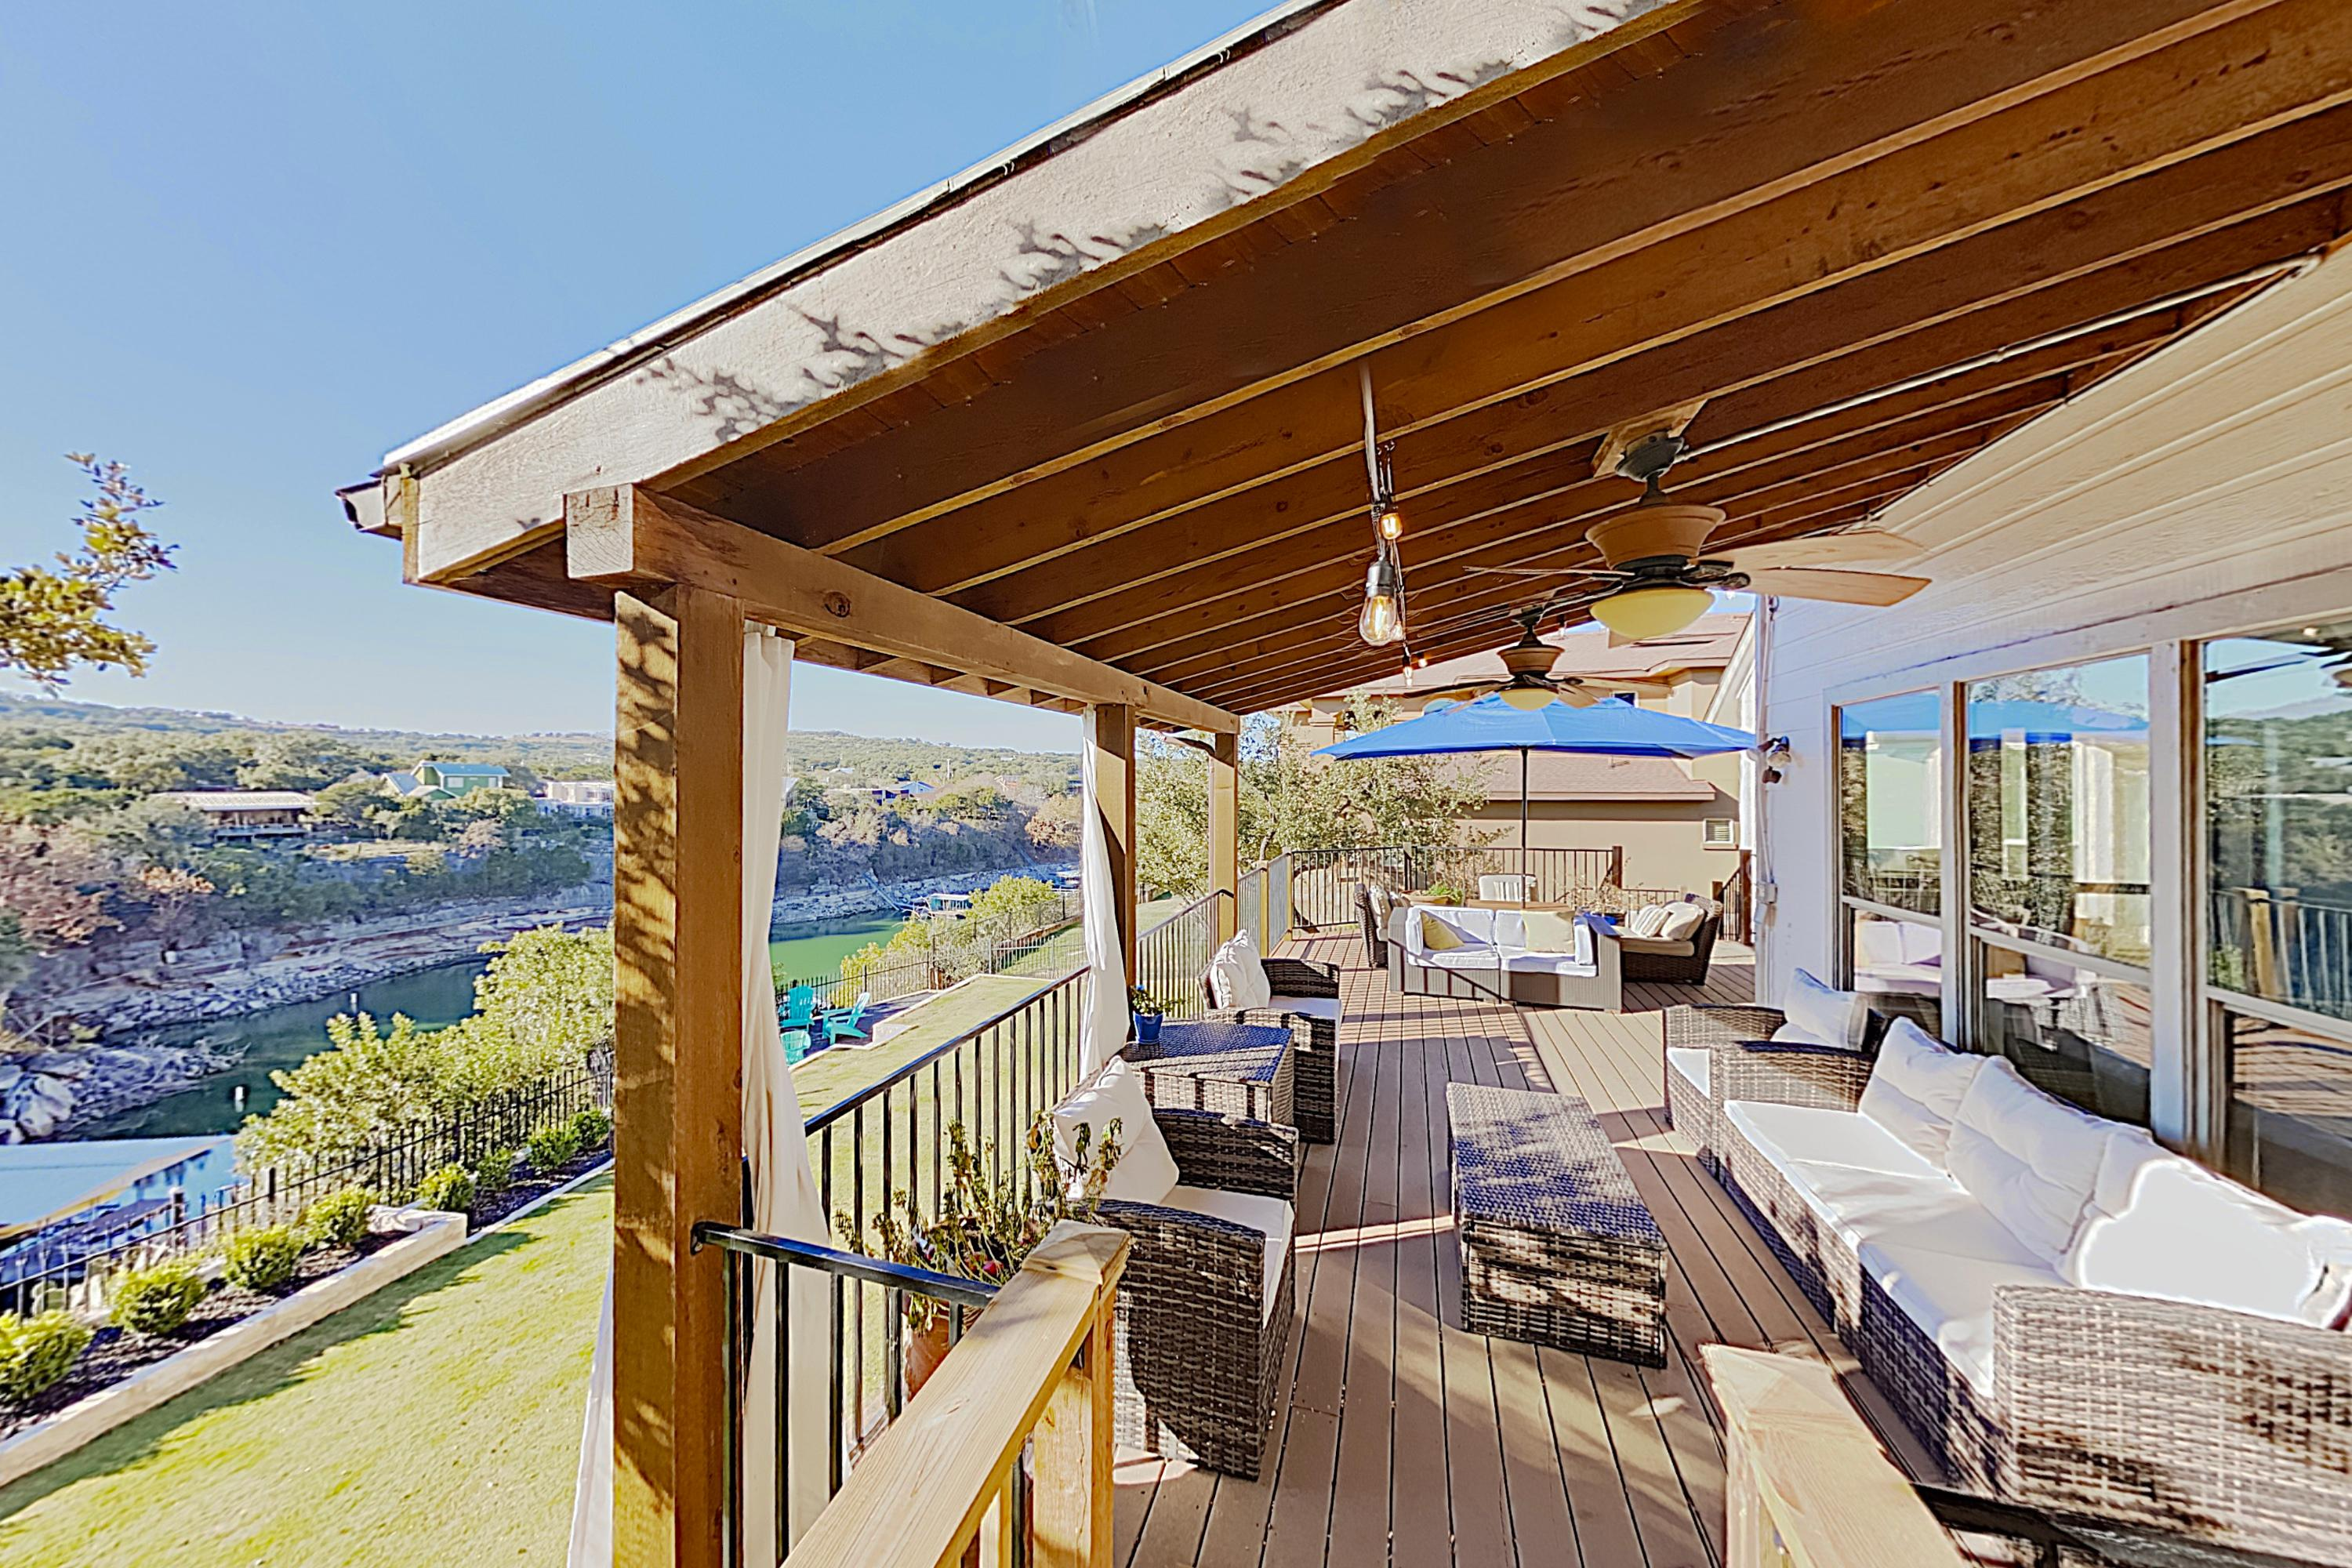 Welcome to Spicewood! This Briarcliff estate on Lake Travis is professionally managed by TurnKey Vacation Rentals.